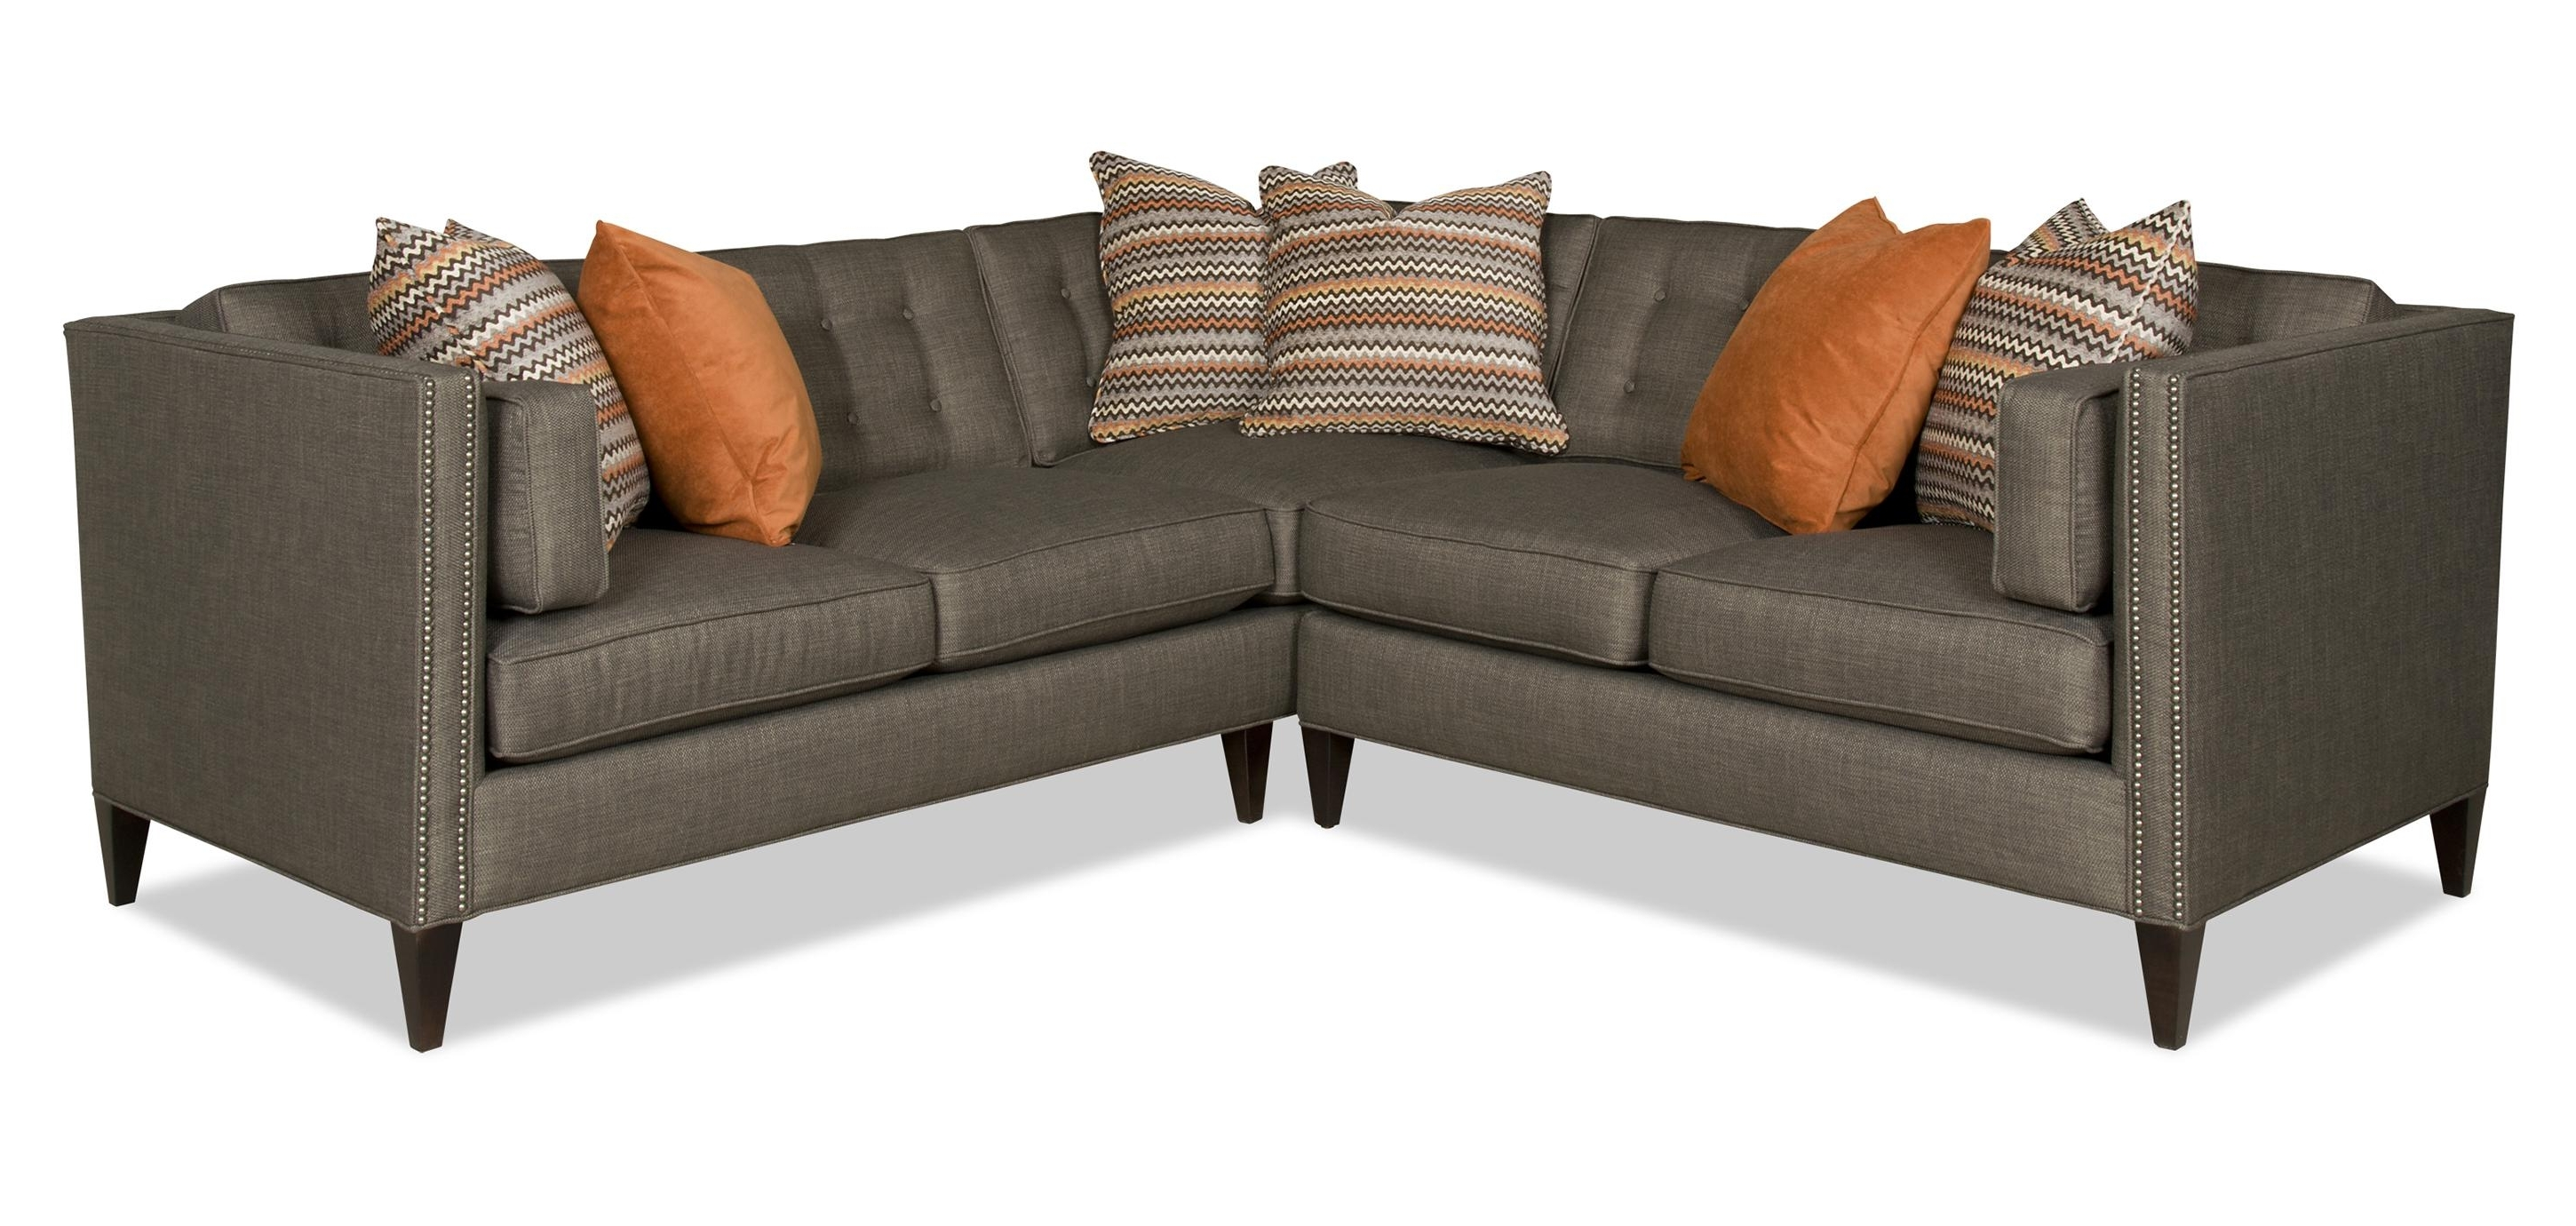 Most Recent Sam Moore Eaton Contemporary Two Piece Sectional Sofa With Intended For Visalia Ca Sectional Sofas (View 10 of 15)